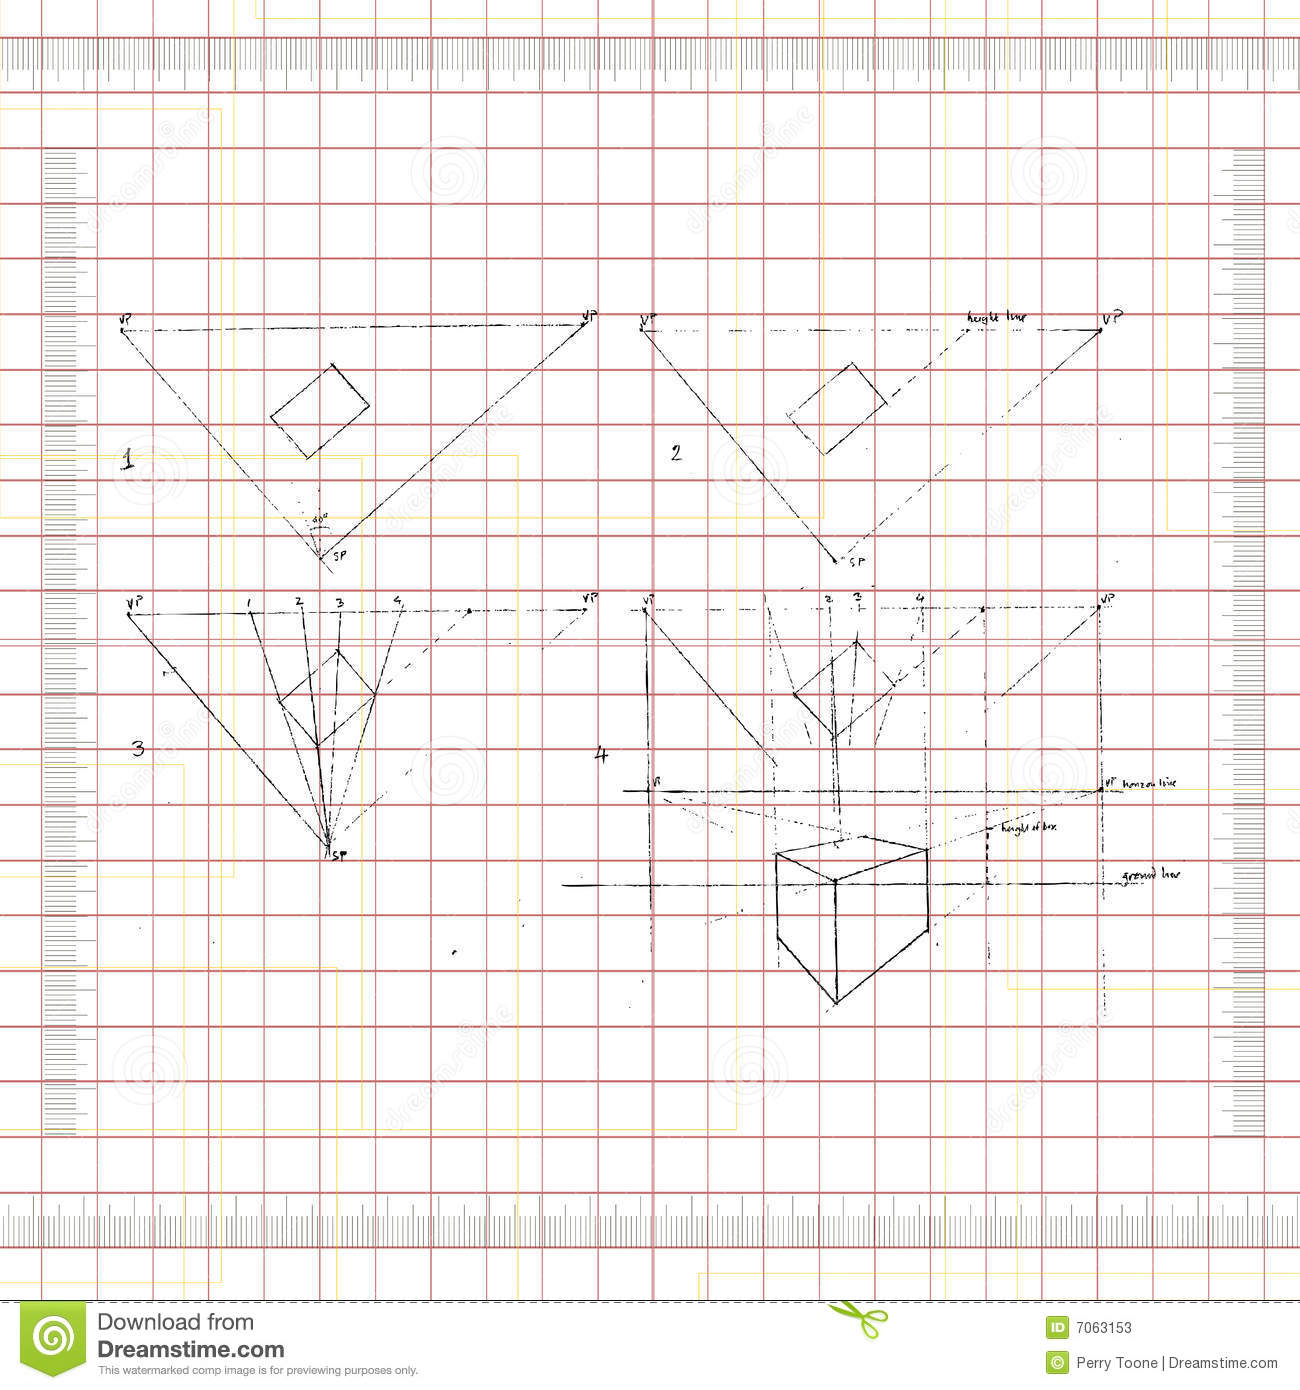 Learn Mechanical Digital Modeling With Auto Cad Catia V5 Solidworks Proe Softwares also Royalty Free Stock Images Under Construction Blueprint Technical Drawing Gear Wheel Scribble Style Image37462199 furthermore Stock Image Plan Drawing Image2936911 moreover Mosque 2d 67059 additionally Royalty Free Stock Photo Child S Hand Drawing Image24291515. on 2d house drawing